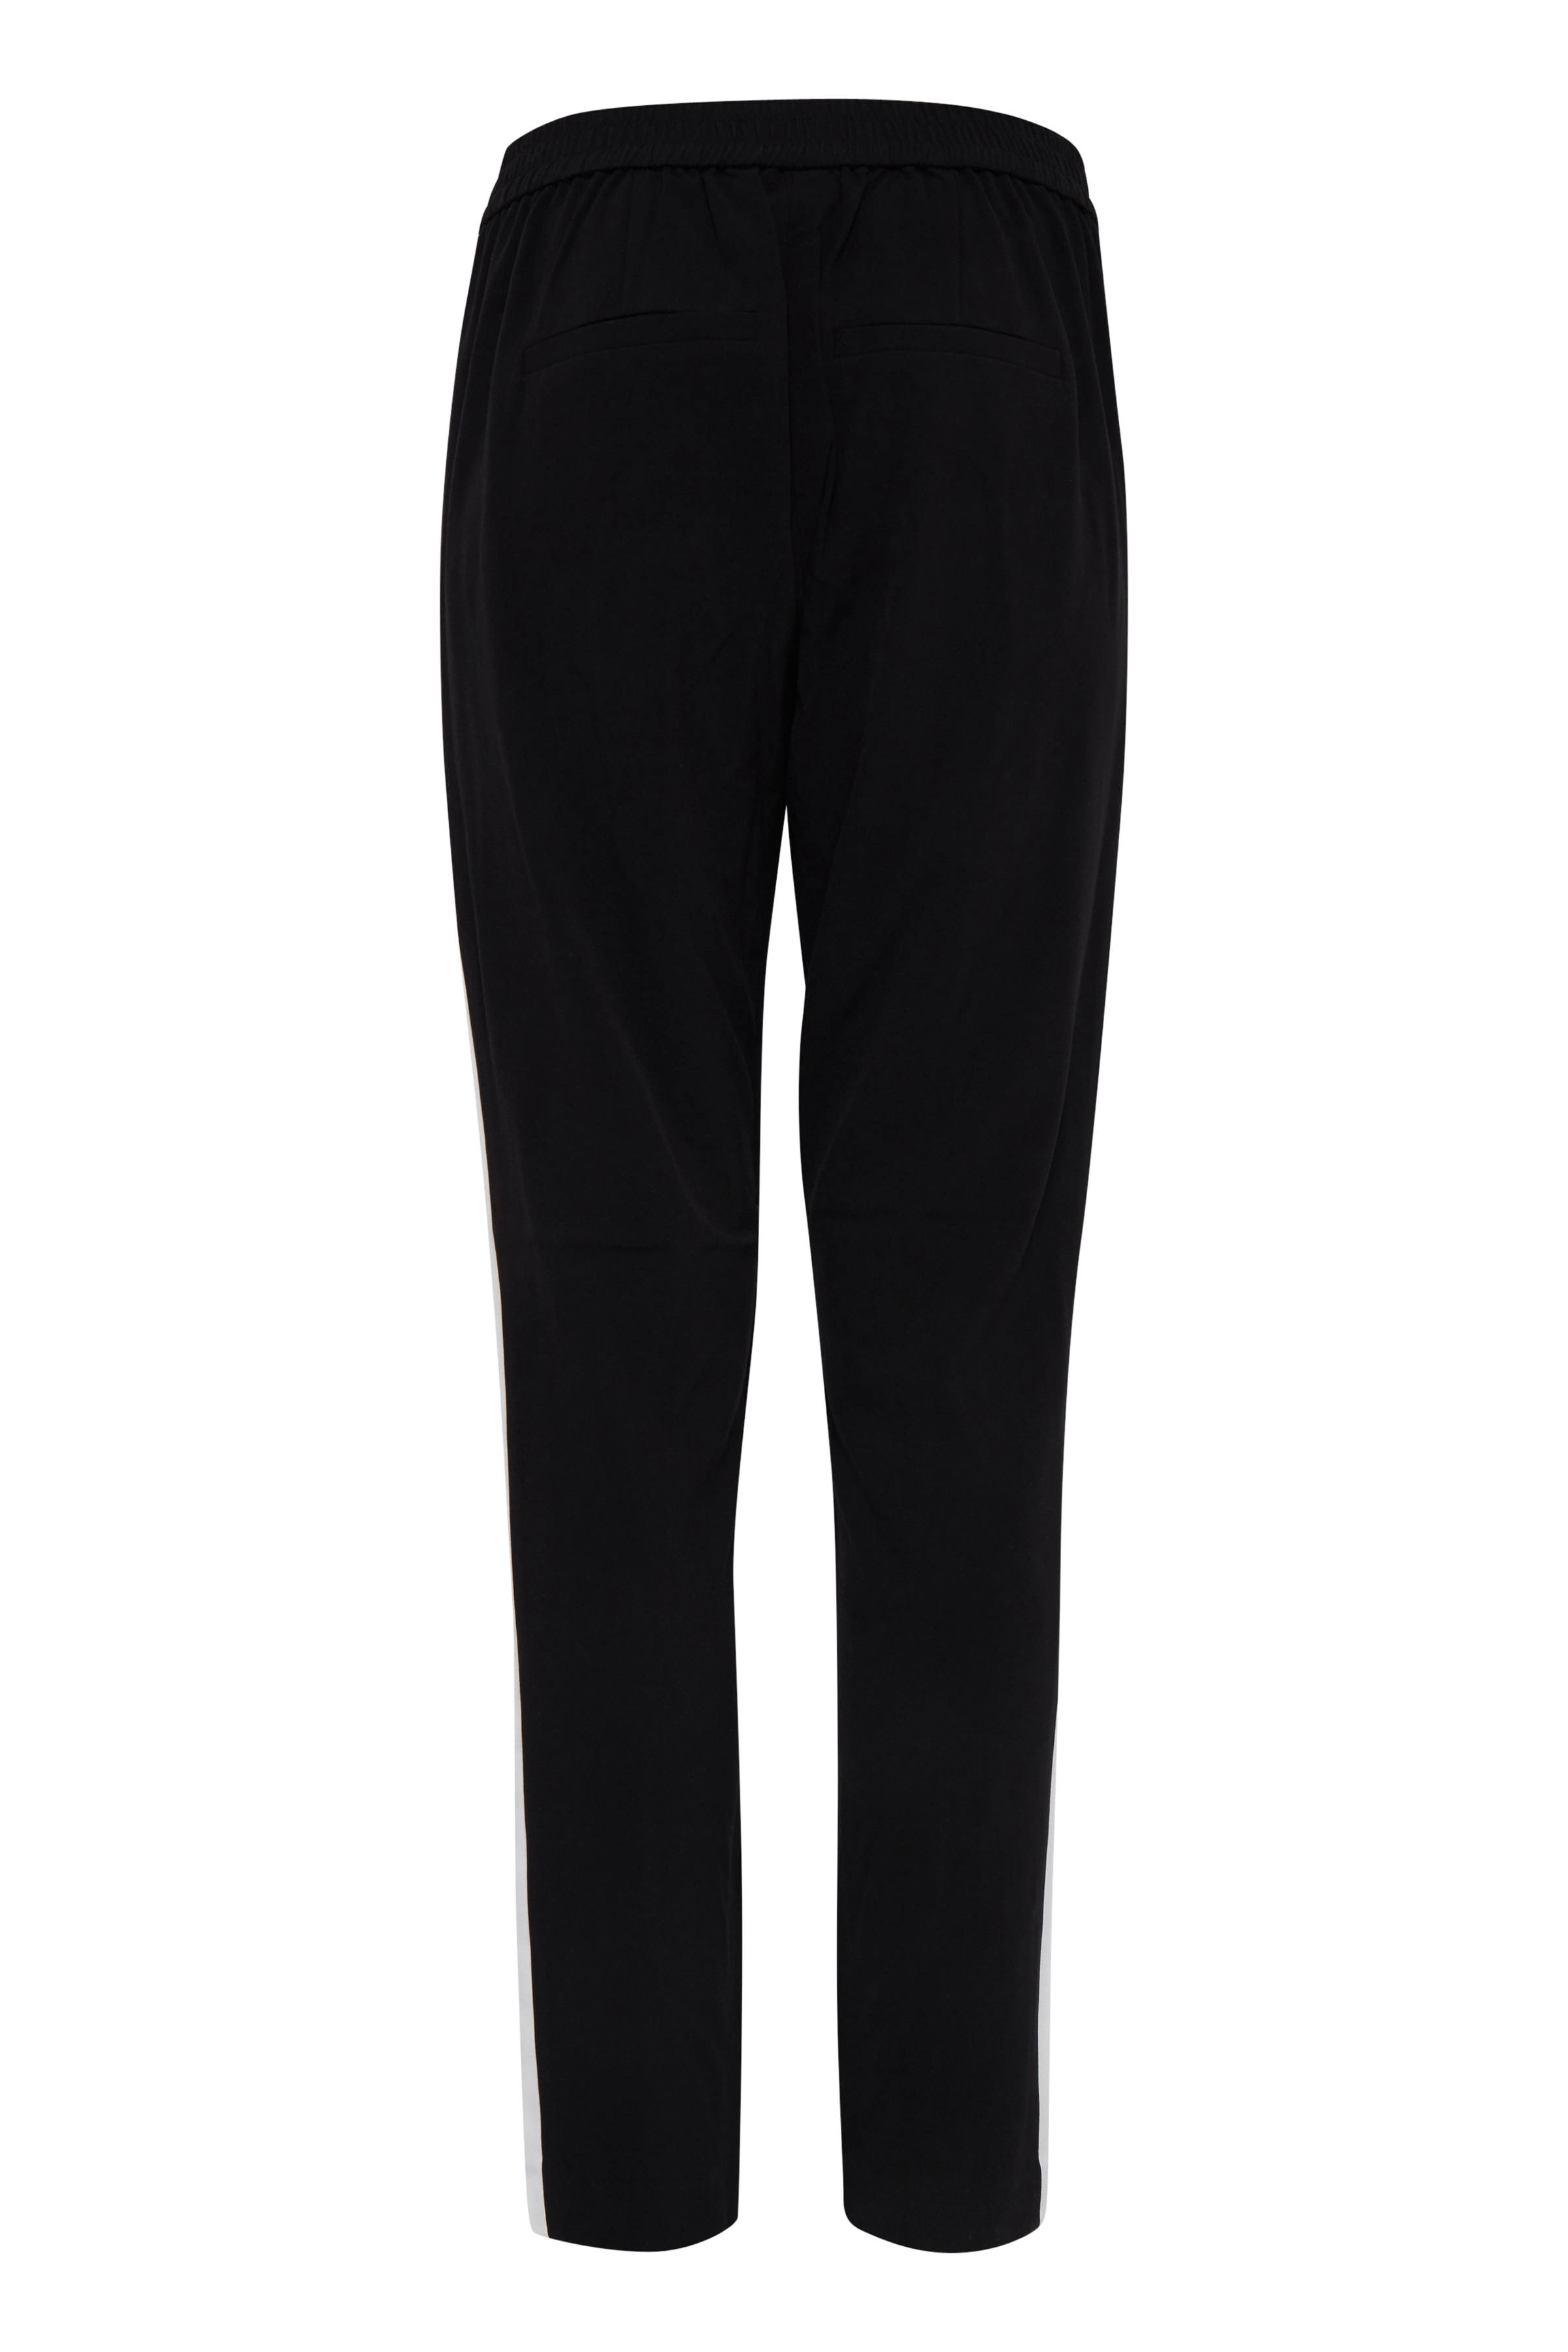 Black combi Pants Casual fra b.young – Køb Black combi Pants Casual fra str. 34-44 her